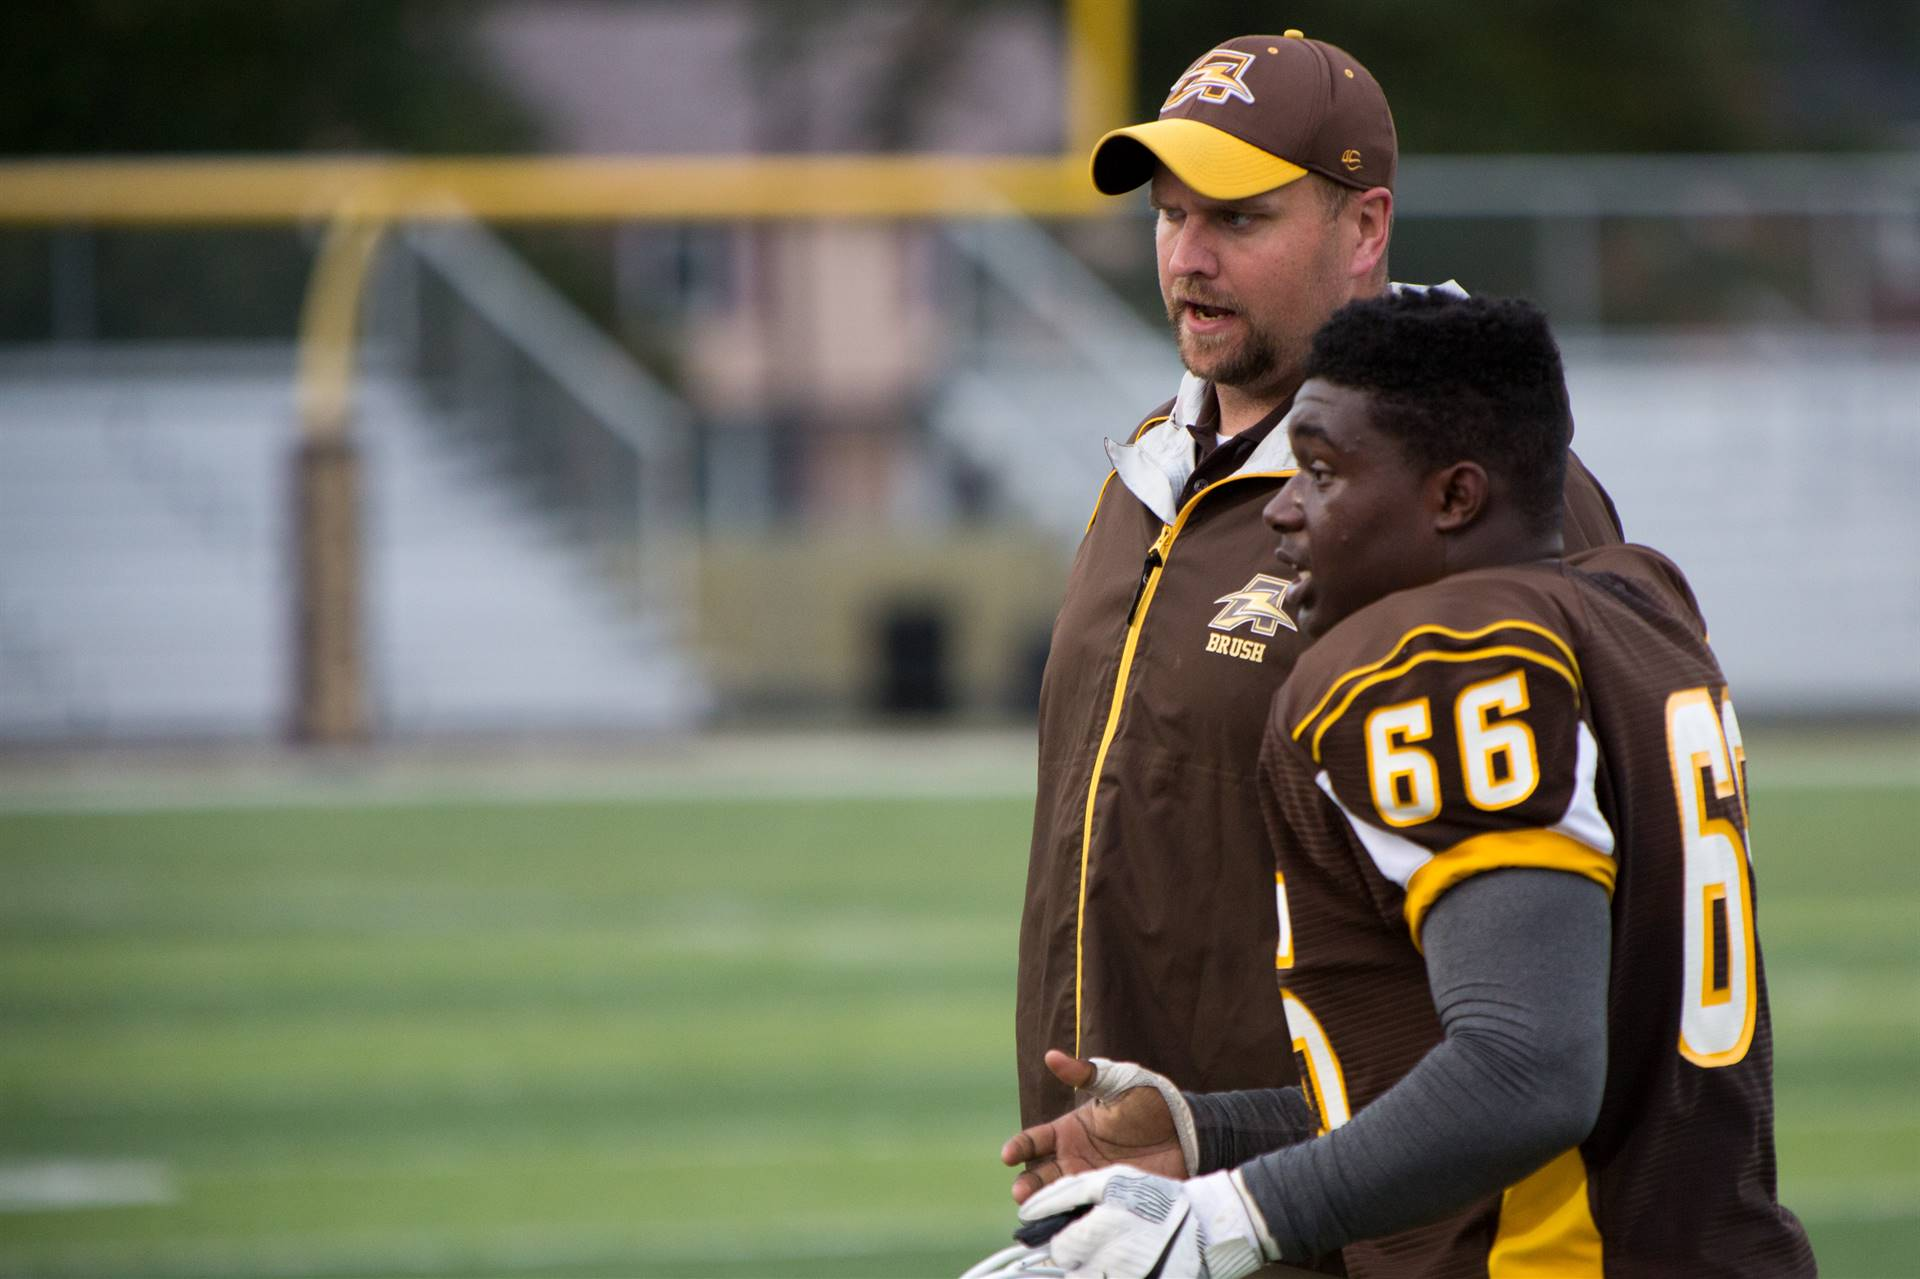 Head Coach Jeff Finks wins Inner Circle Foundation Coach of Year